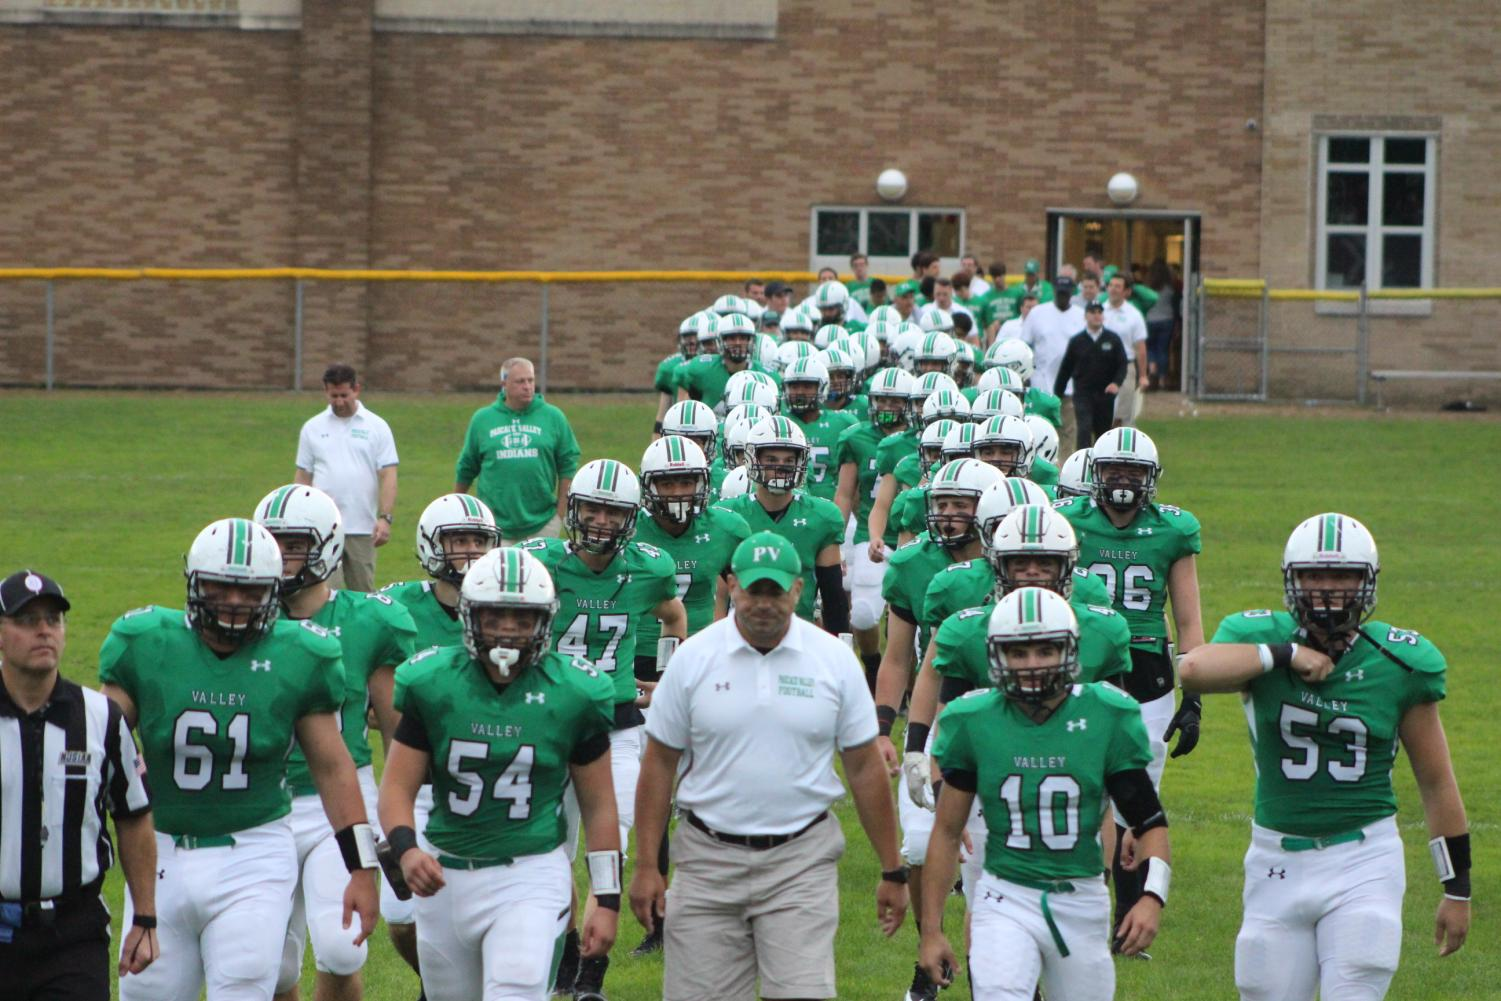 Indians hope to build on success against River Dell